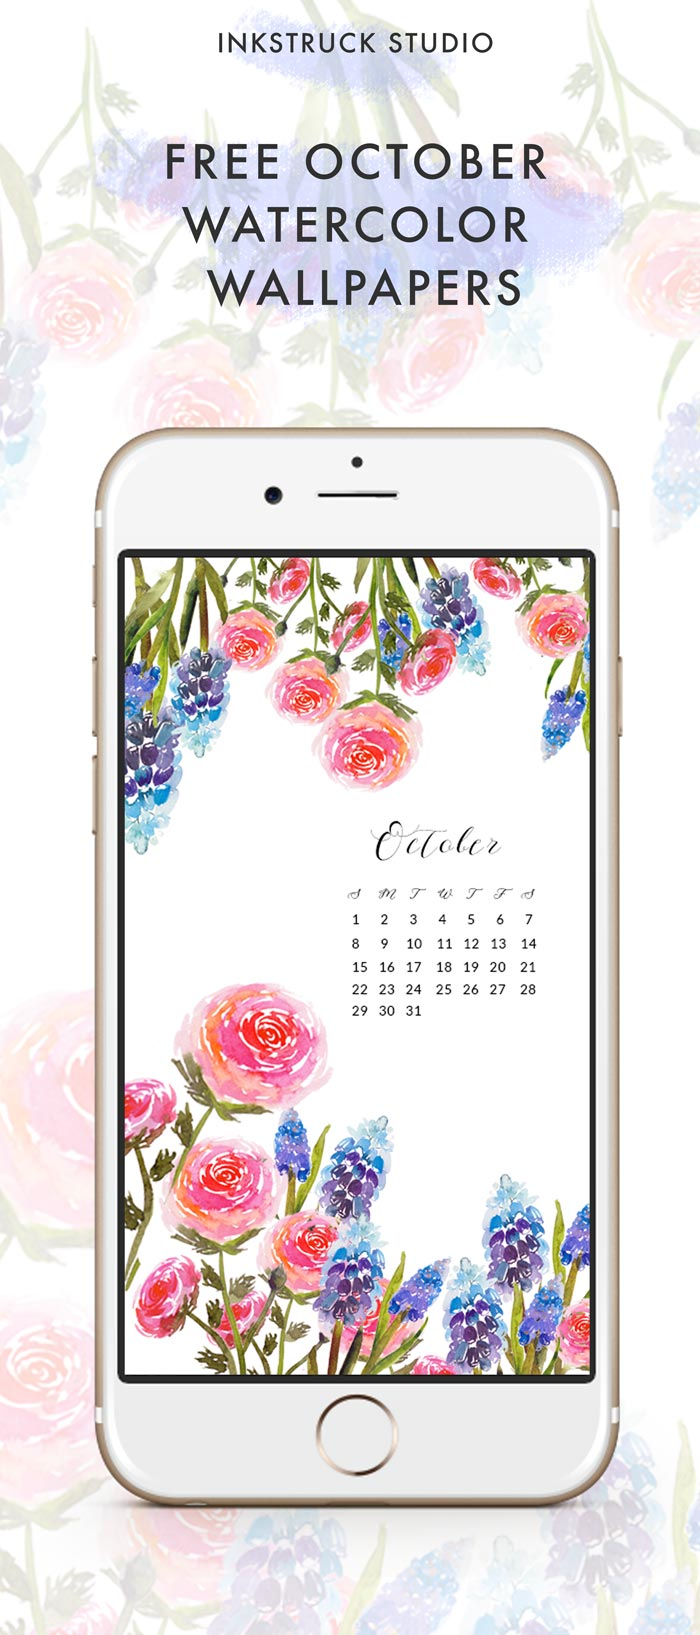 These October watercolor wallpapers are perfect to beautify your tech devices. Download them over at the blog for free - Inkstruck Studio